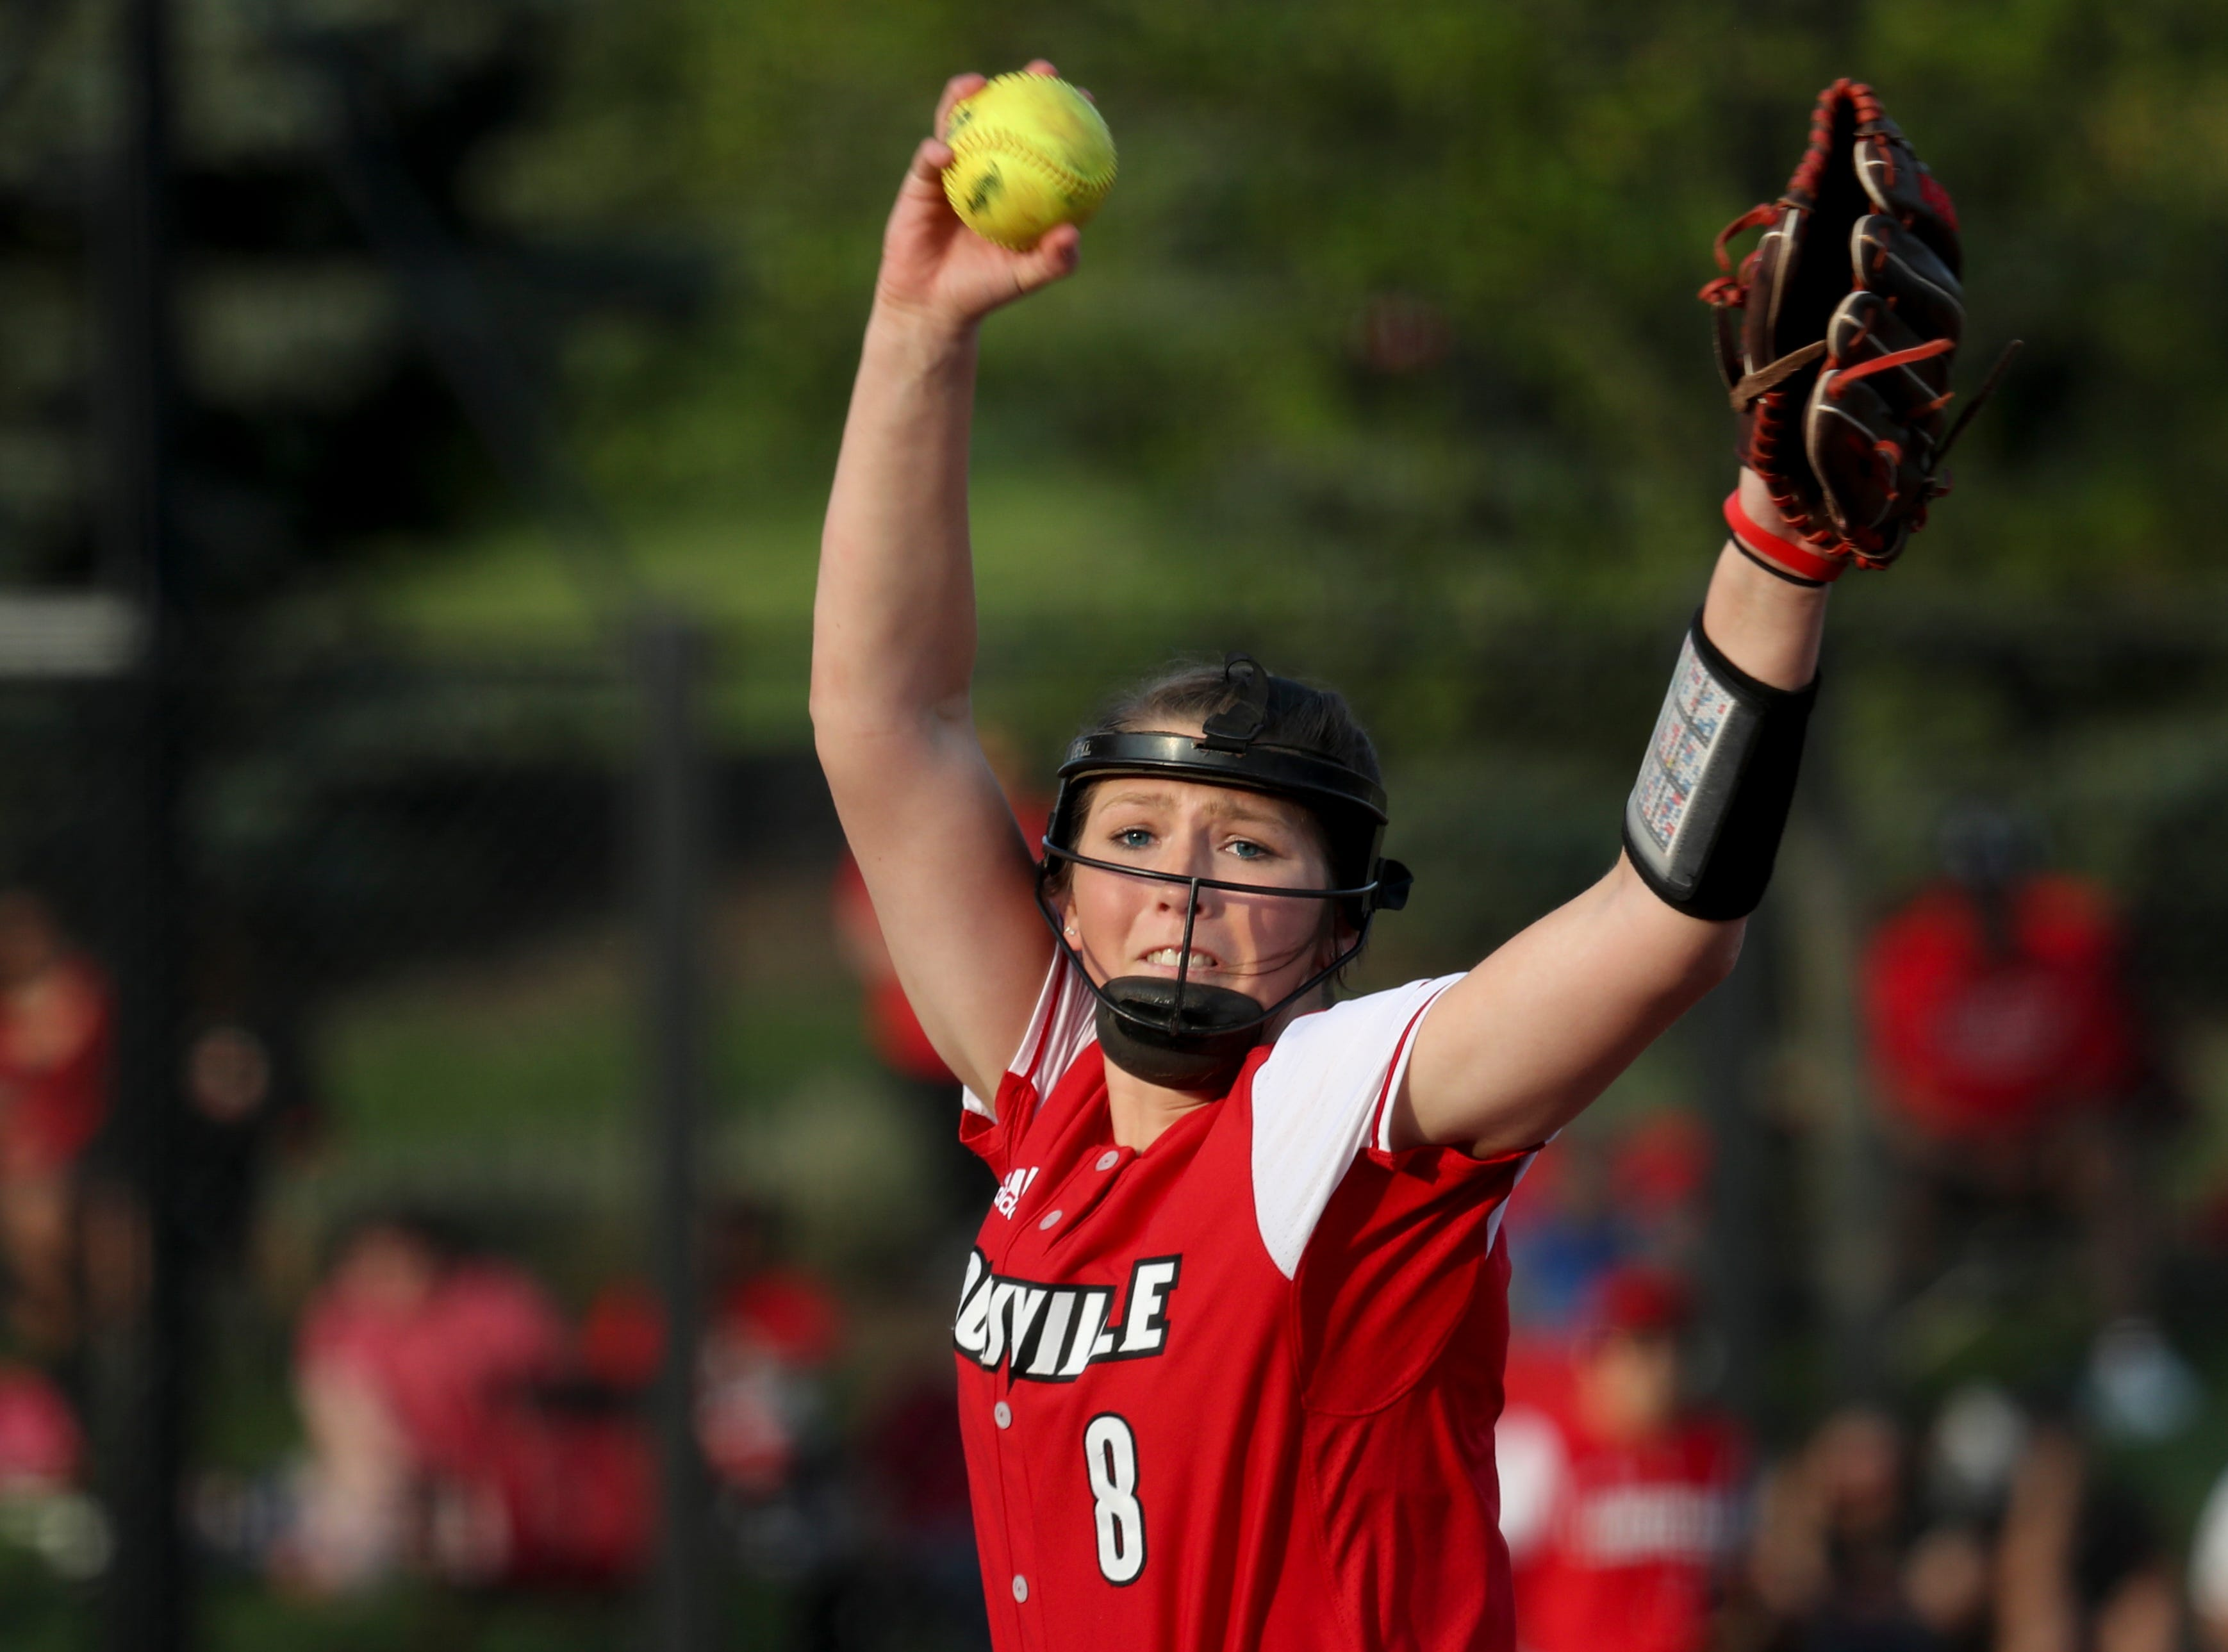 Louisville's Taylor Roby delivers the ball home against Kentucky on April 17.